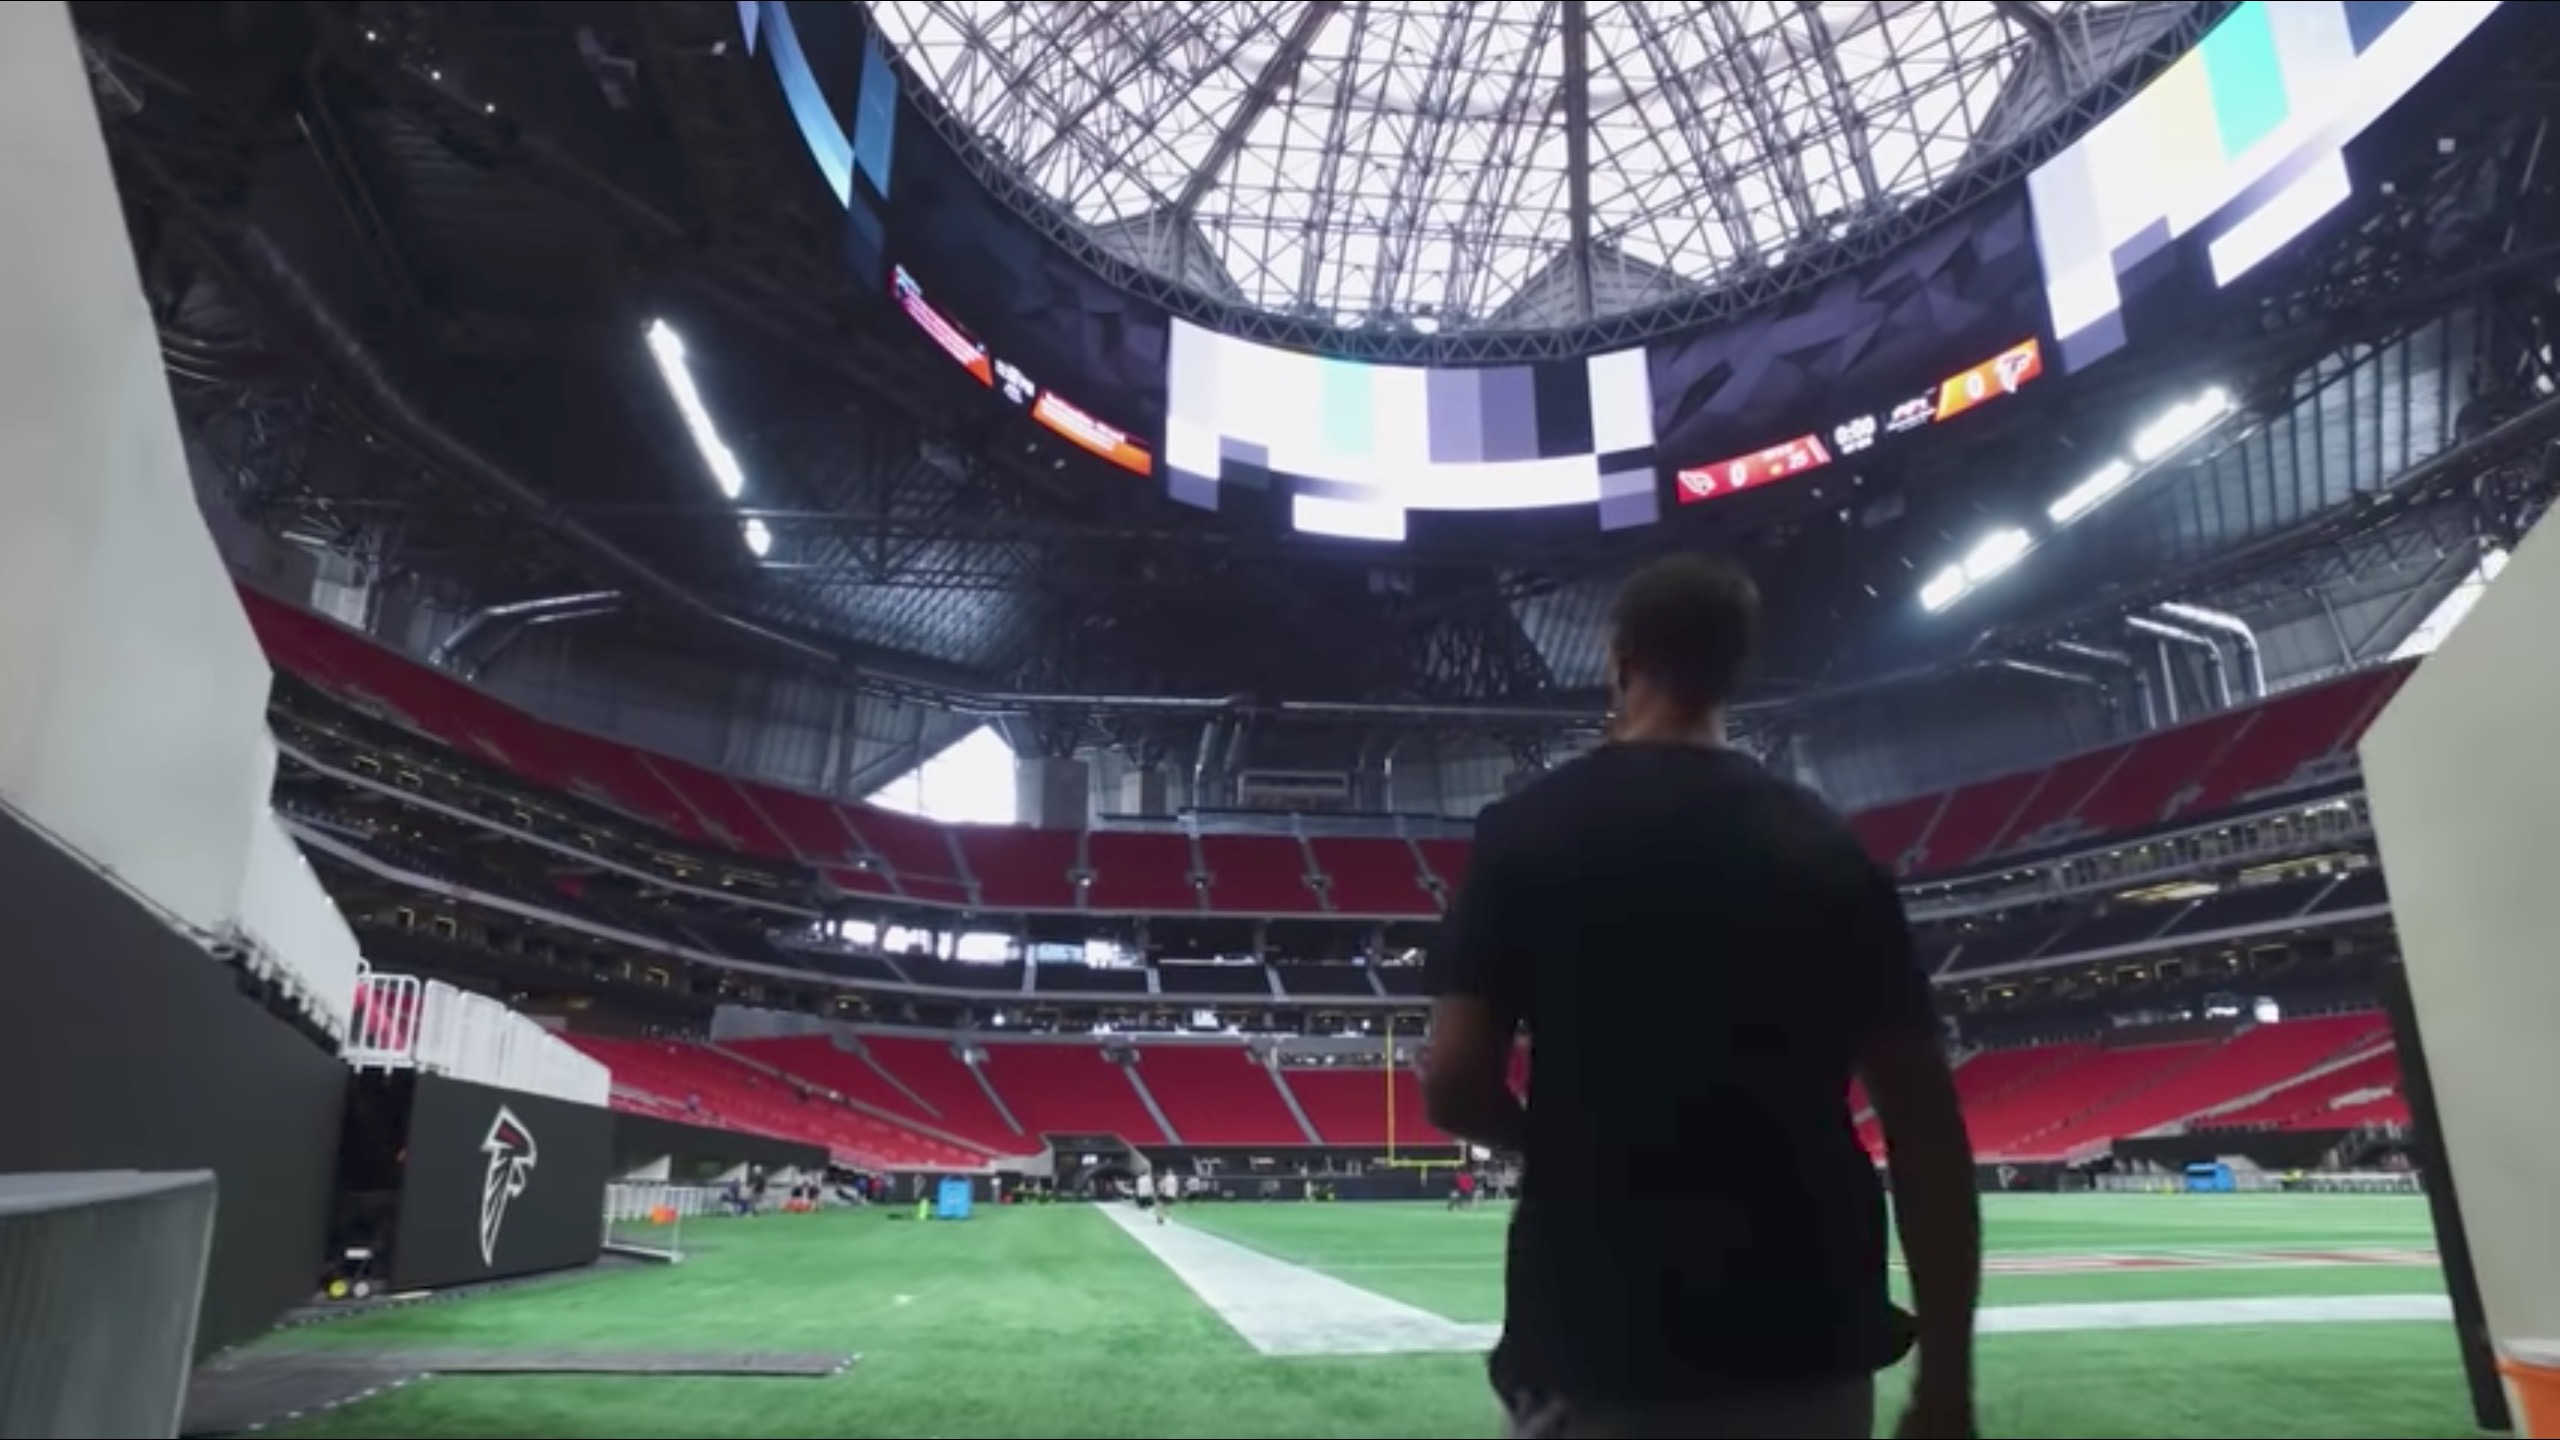 Mercedes benz stadium wiki everipedia for Mercedes benz stadium price